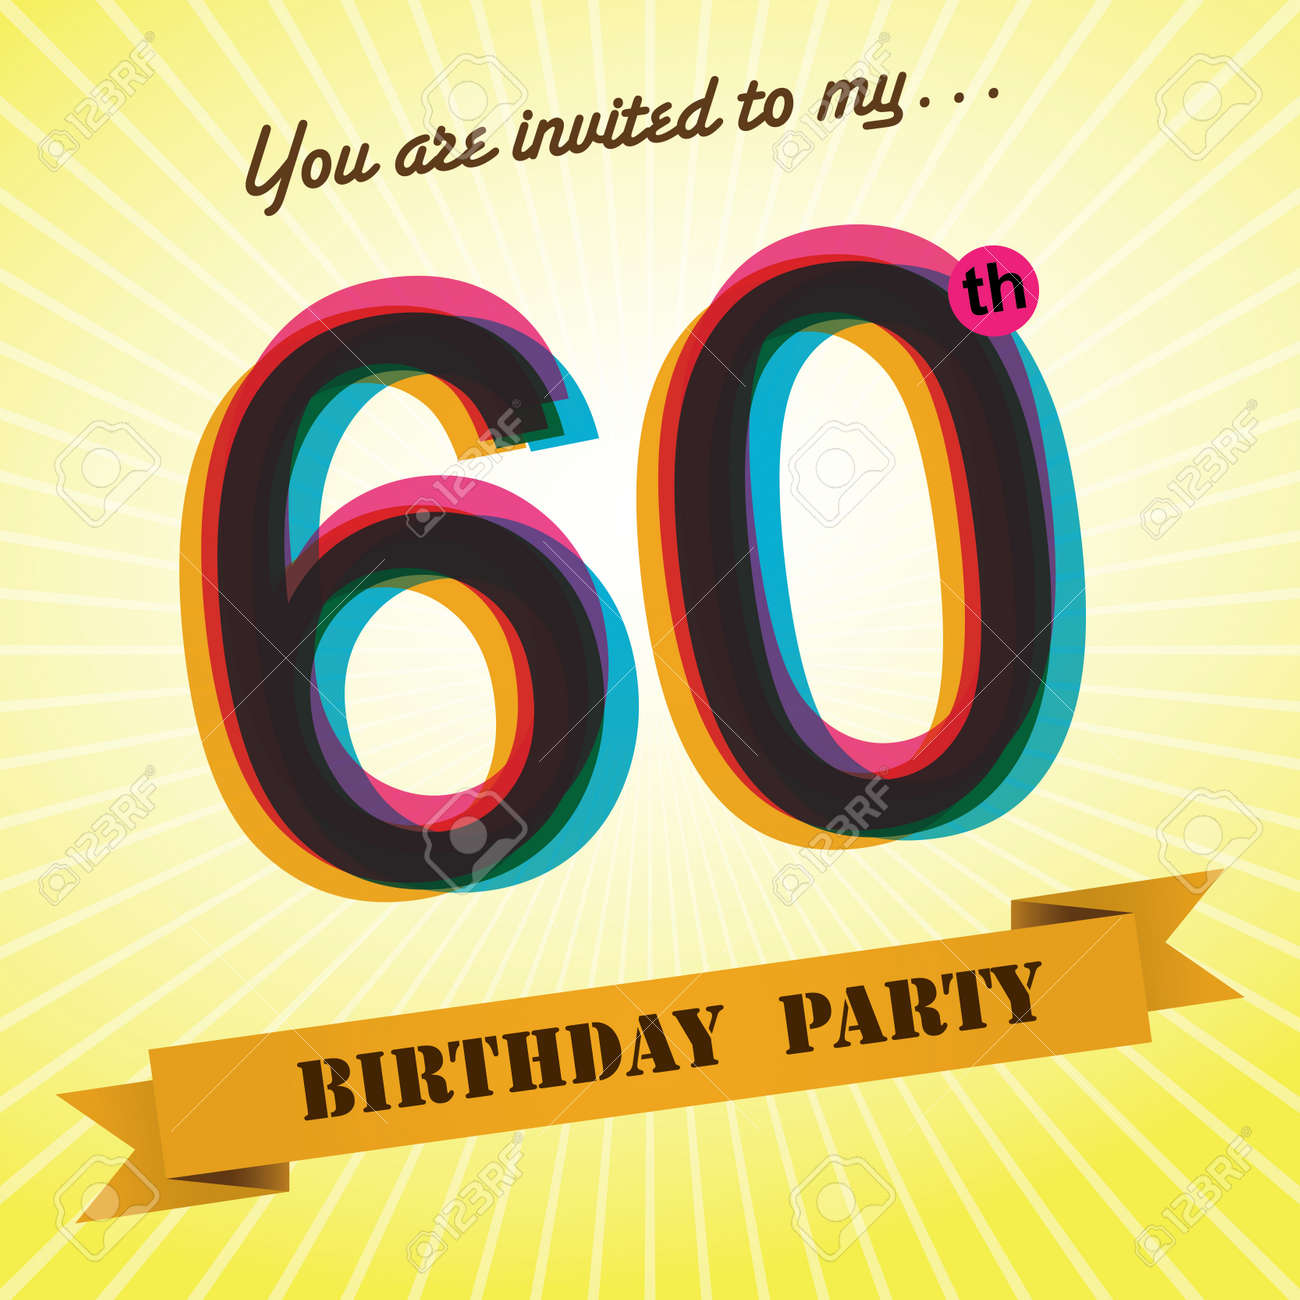 60th Birthday Party Invite Template Design Retro Style